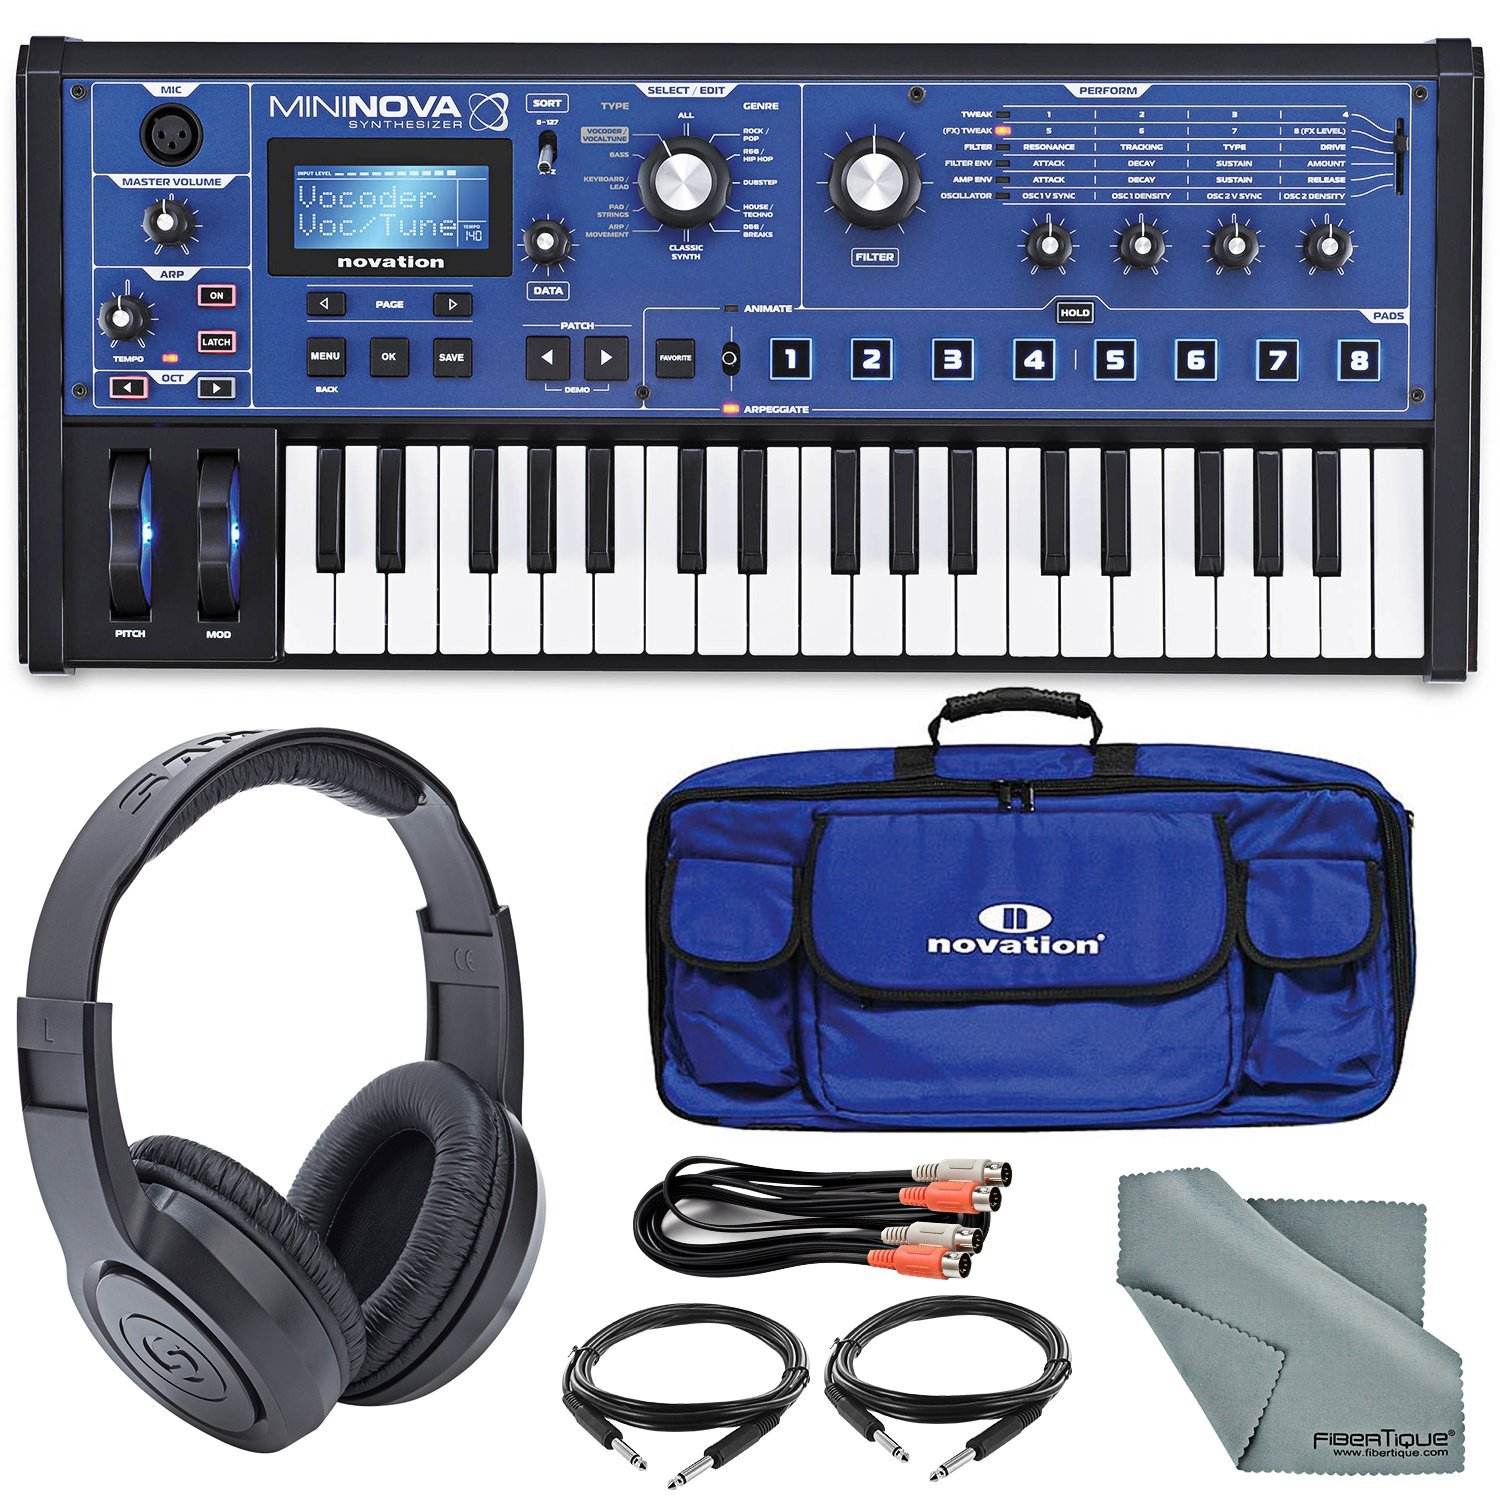 Novation MiniNova Compact Analog Modelling Synthesizer W/Stereo Headphones, Gig Bag, Cables and FiberTique Cleaning Cloth